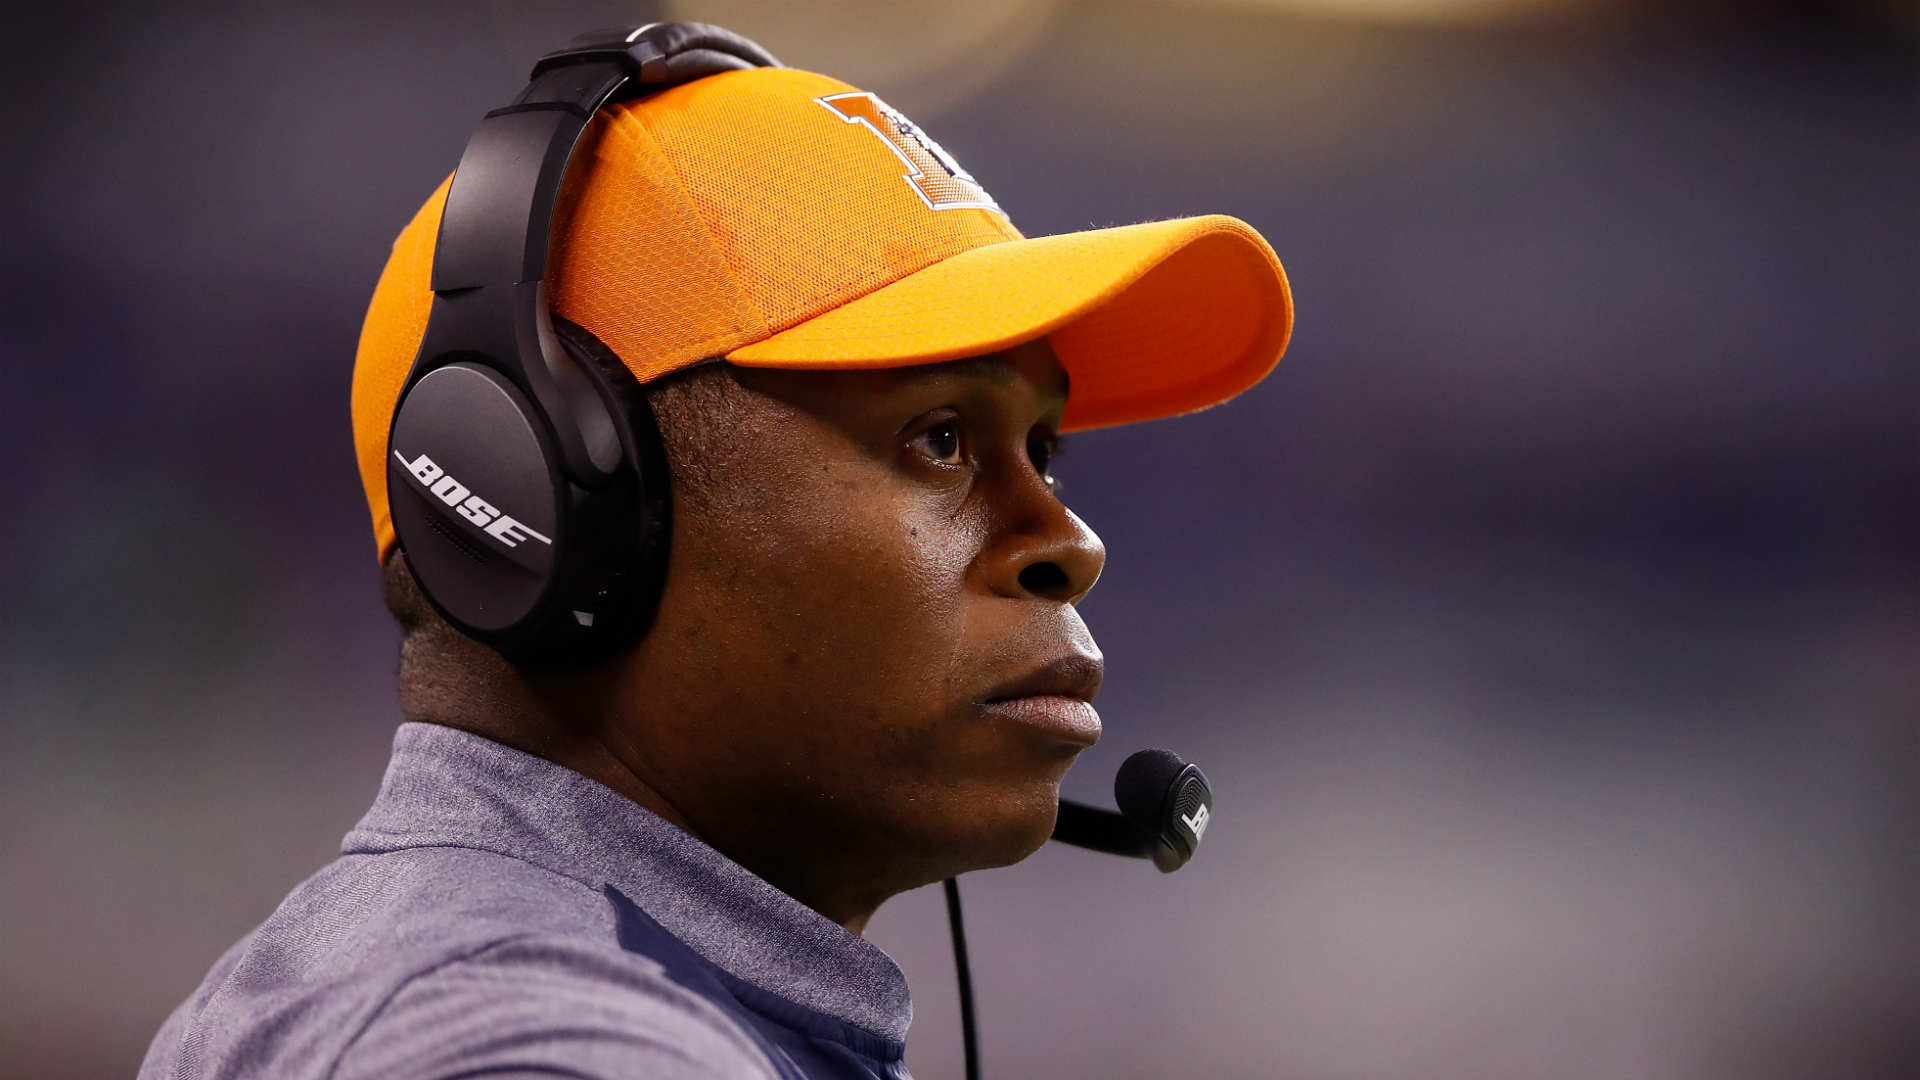 Denver Broncos may have already chose to  fire Vance Joseph